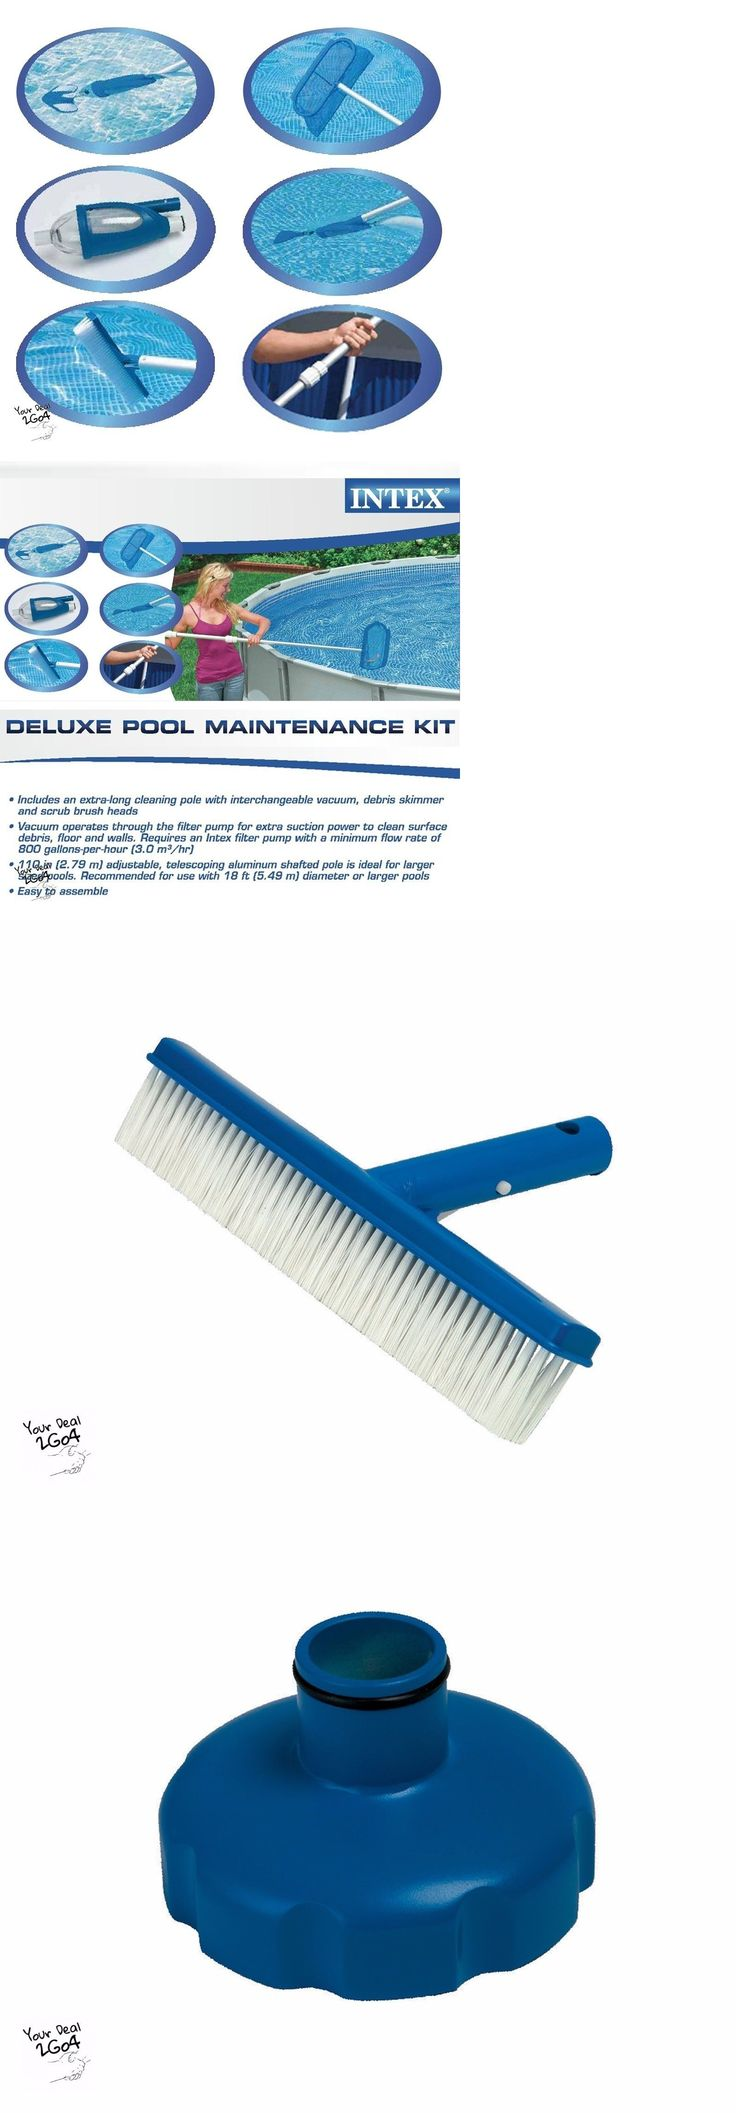 Other Pool Cleaning 181066: Swimming Pool Maintenance Kit Intex Cleaner Above Ground Supplies Deluxe New -> BUY IT NOW ONLY: $41.89 on eBay!